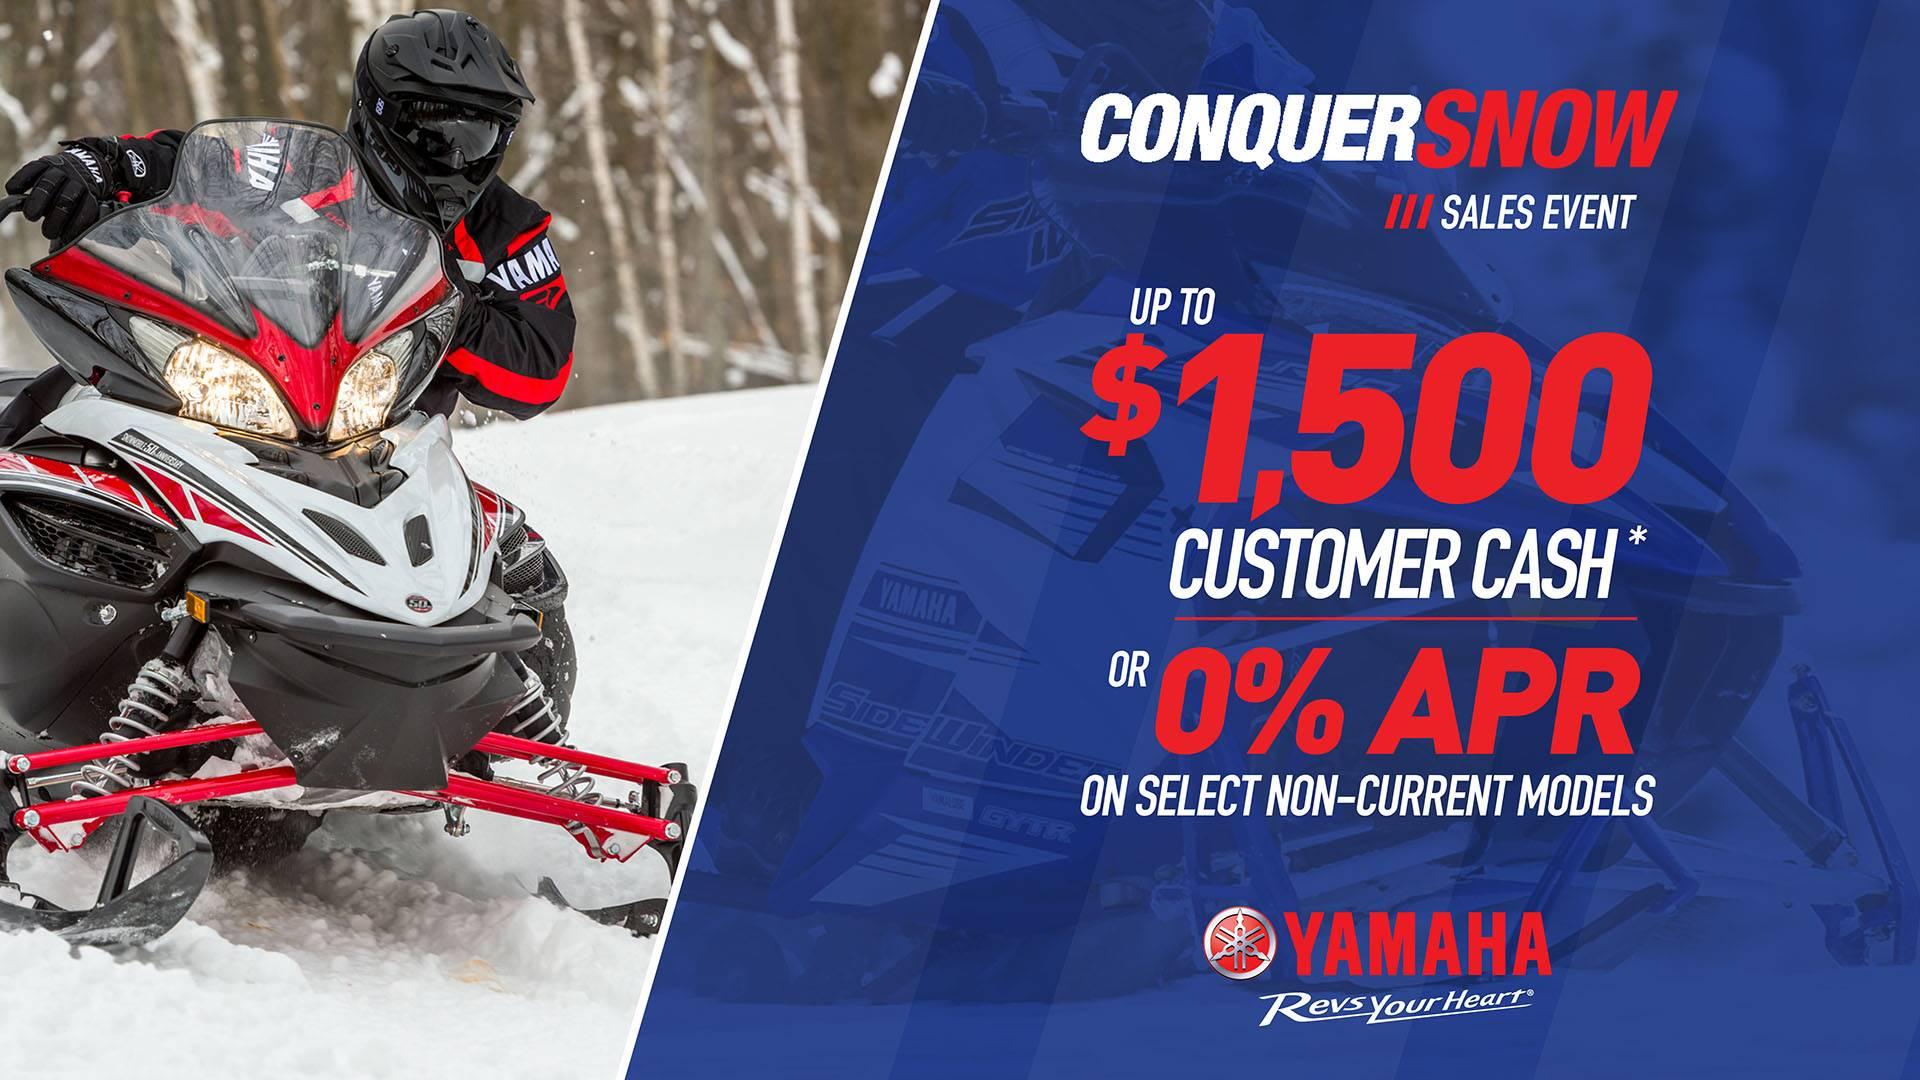 Yamaha Motor Corp., USA Yamaha Snowmobile - Current Offers and Financing